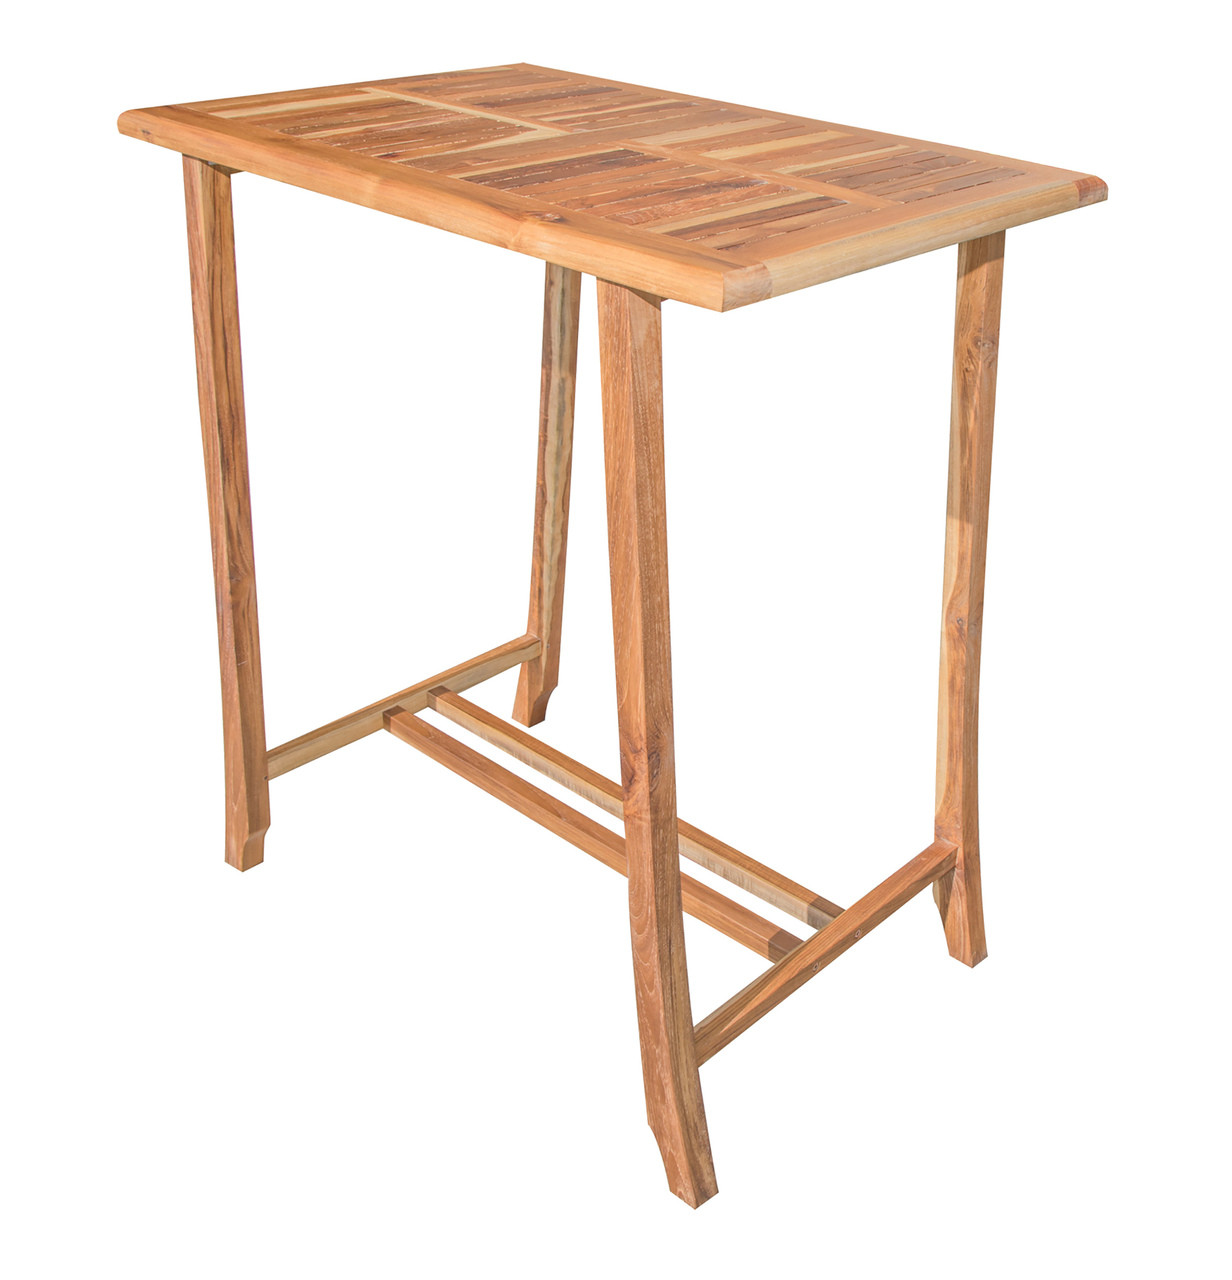 "EcoDecors Satori 35"" x 23.5"" x 40"" Teak Wood Table in EarthyTeak Finish"